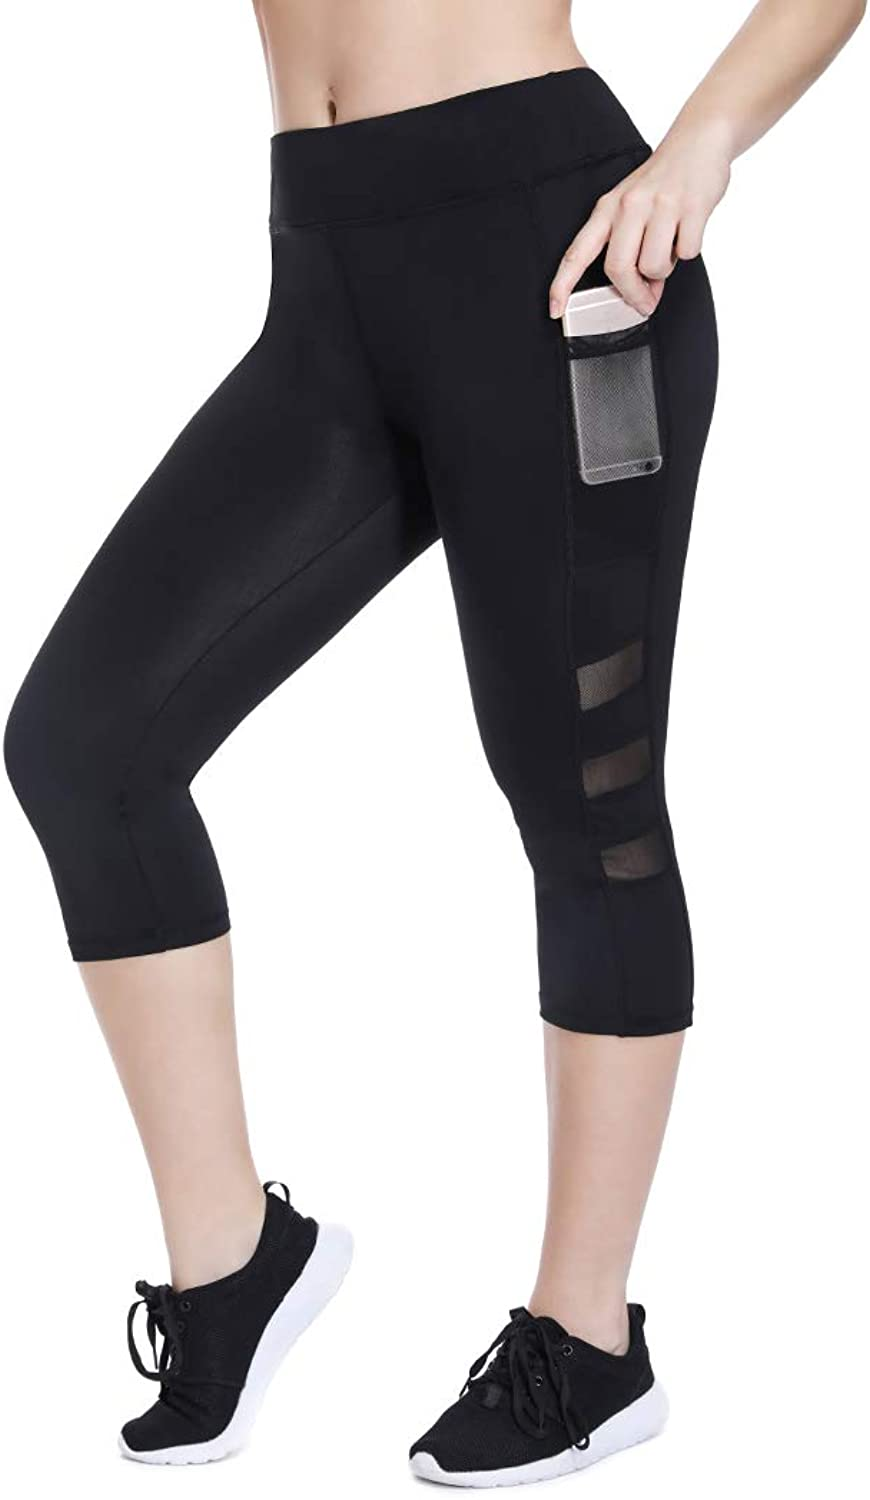 Joyshaper High Waisted Cropped Workout Leggings for Women with Pockets Mesh Capri Yoga Pants Gym Tights